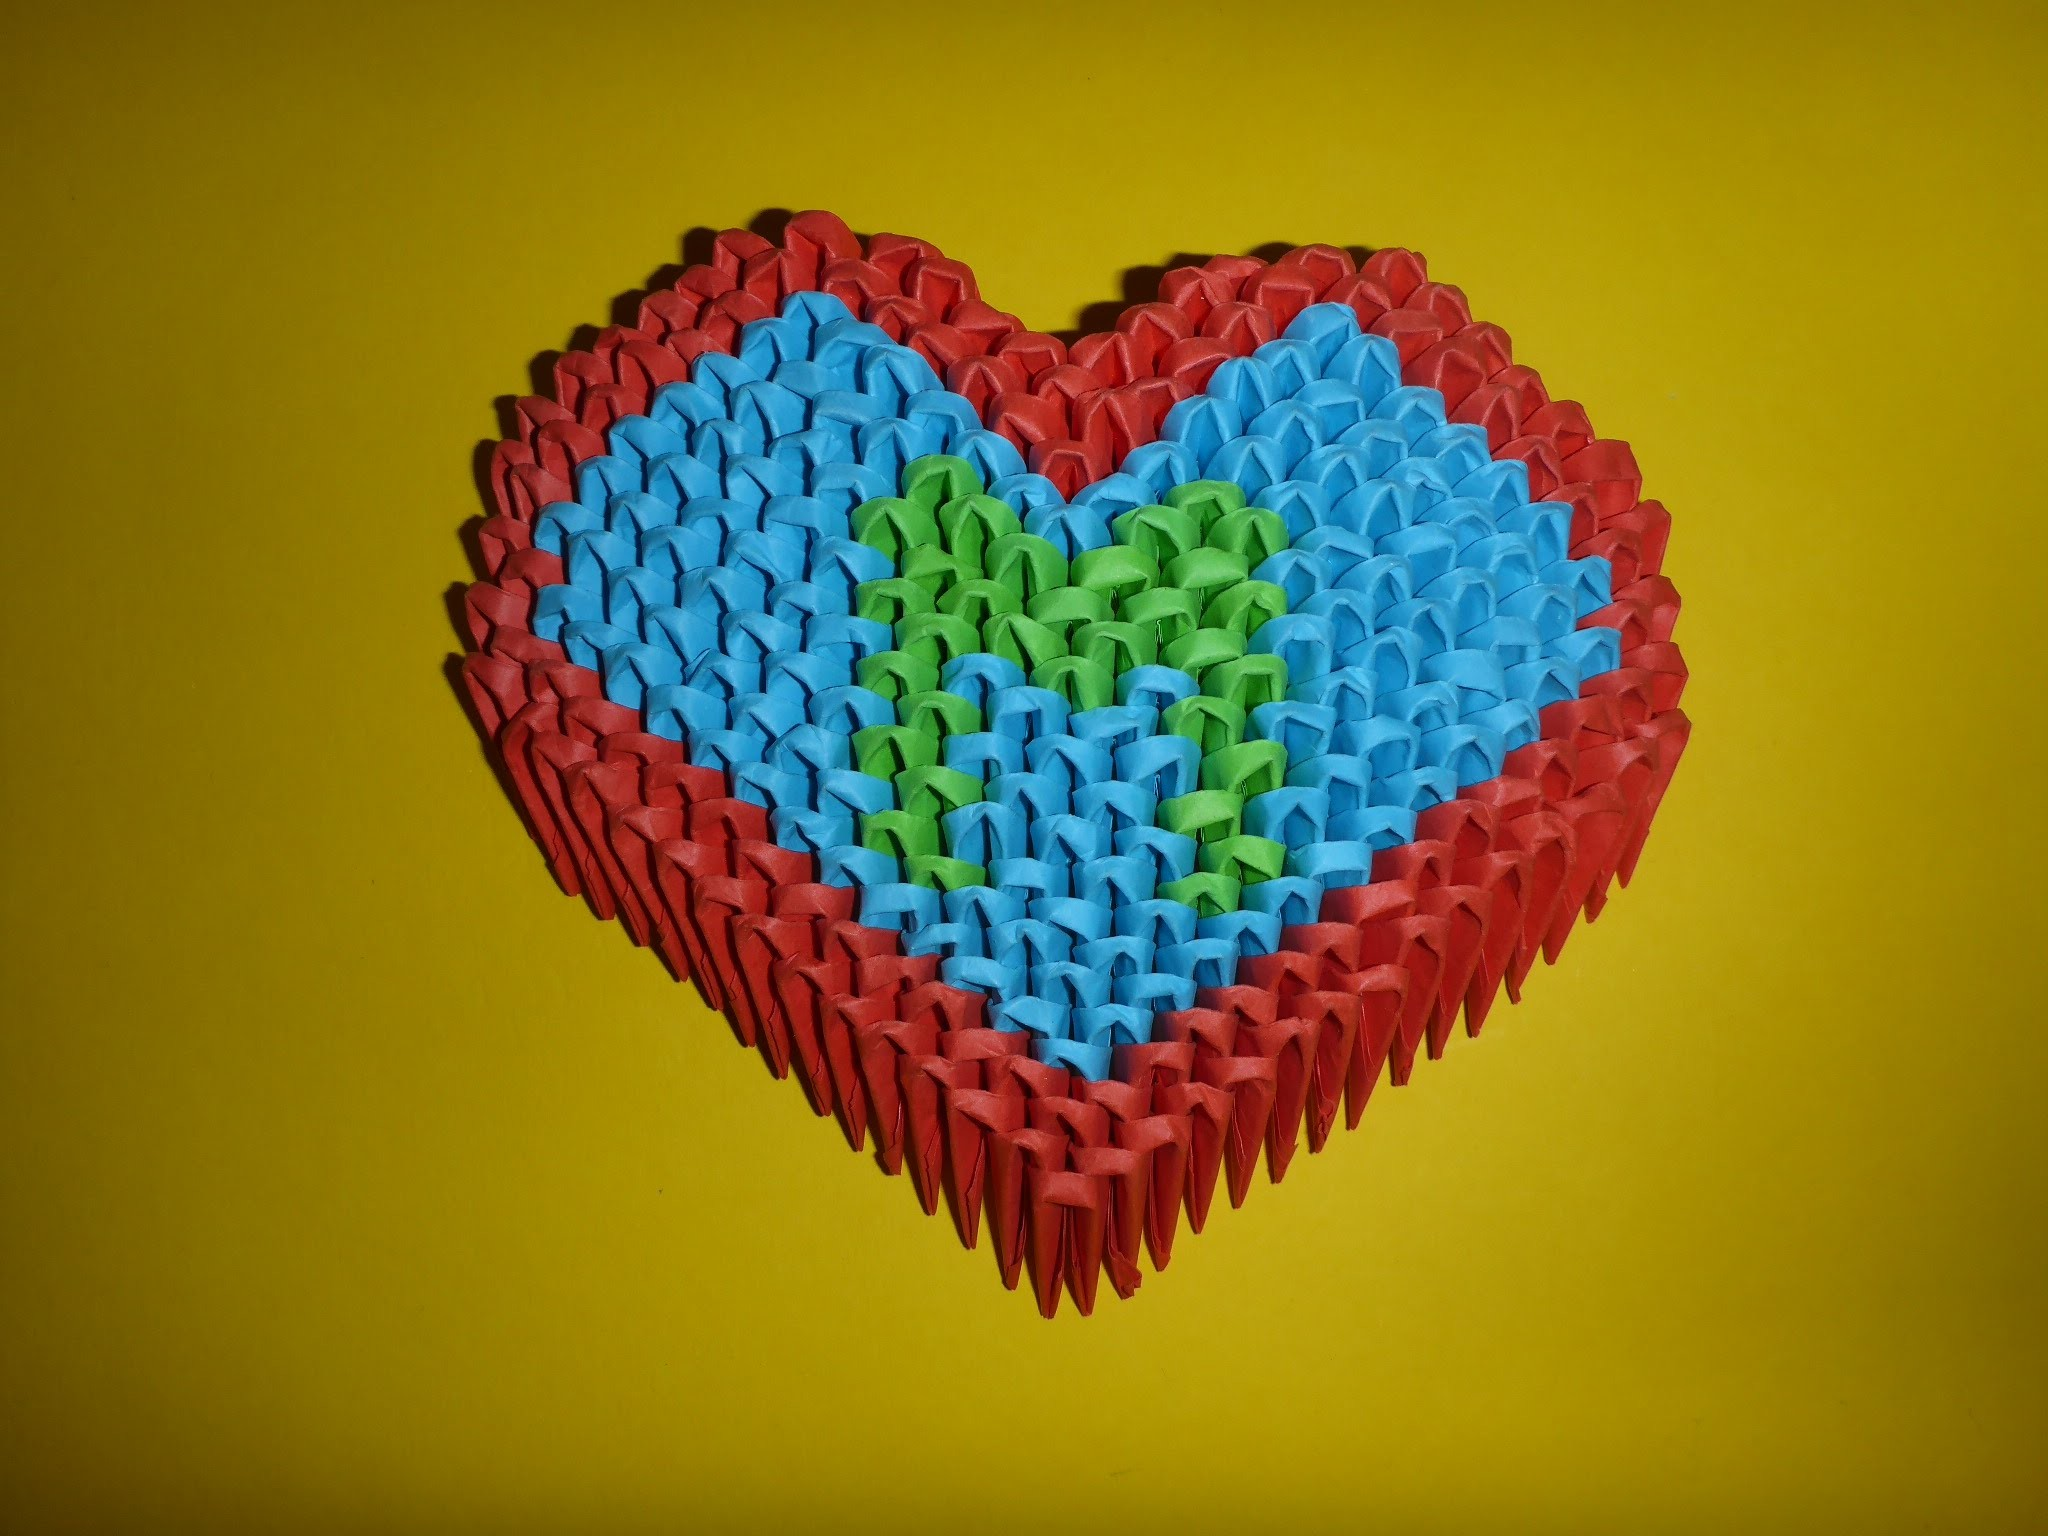 DIY 3D ORIGAMI IDEEN Herz, Geschenk zum Muttertag, Moter´s day Gift Ideas Heart Tutorial